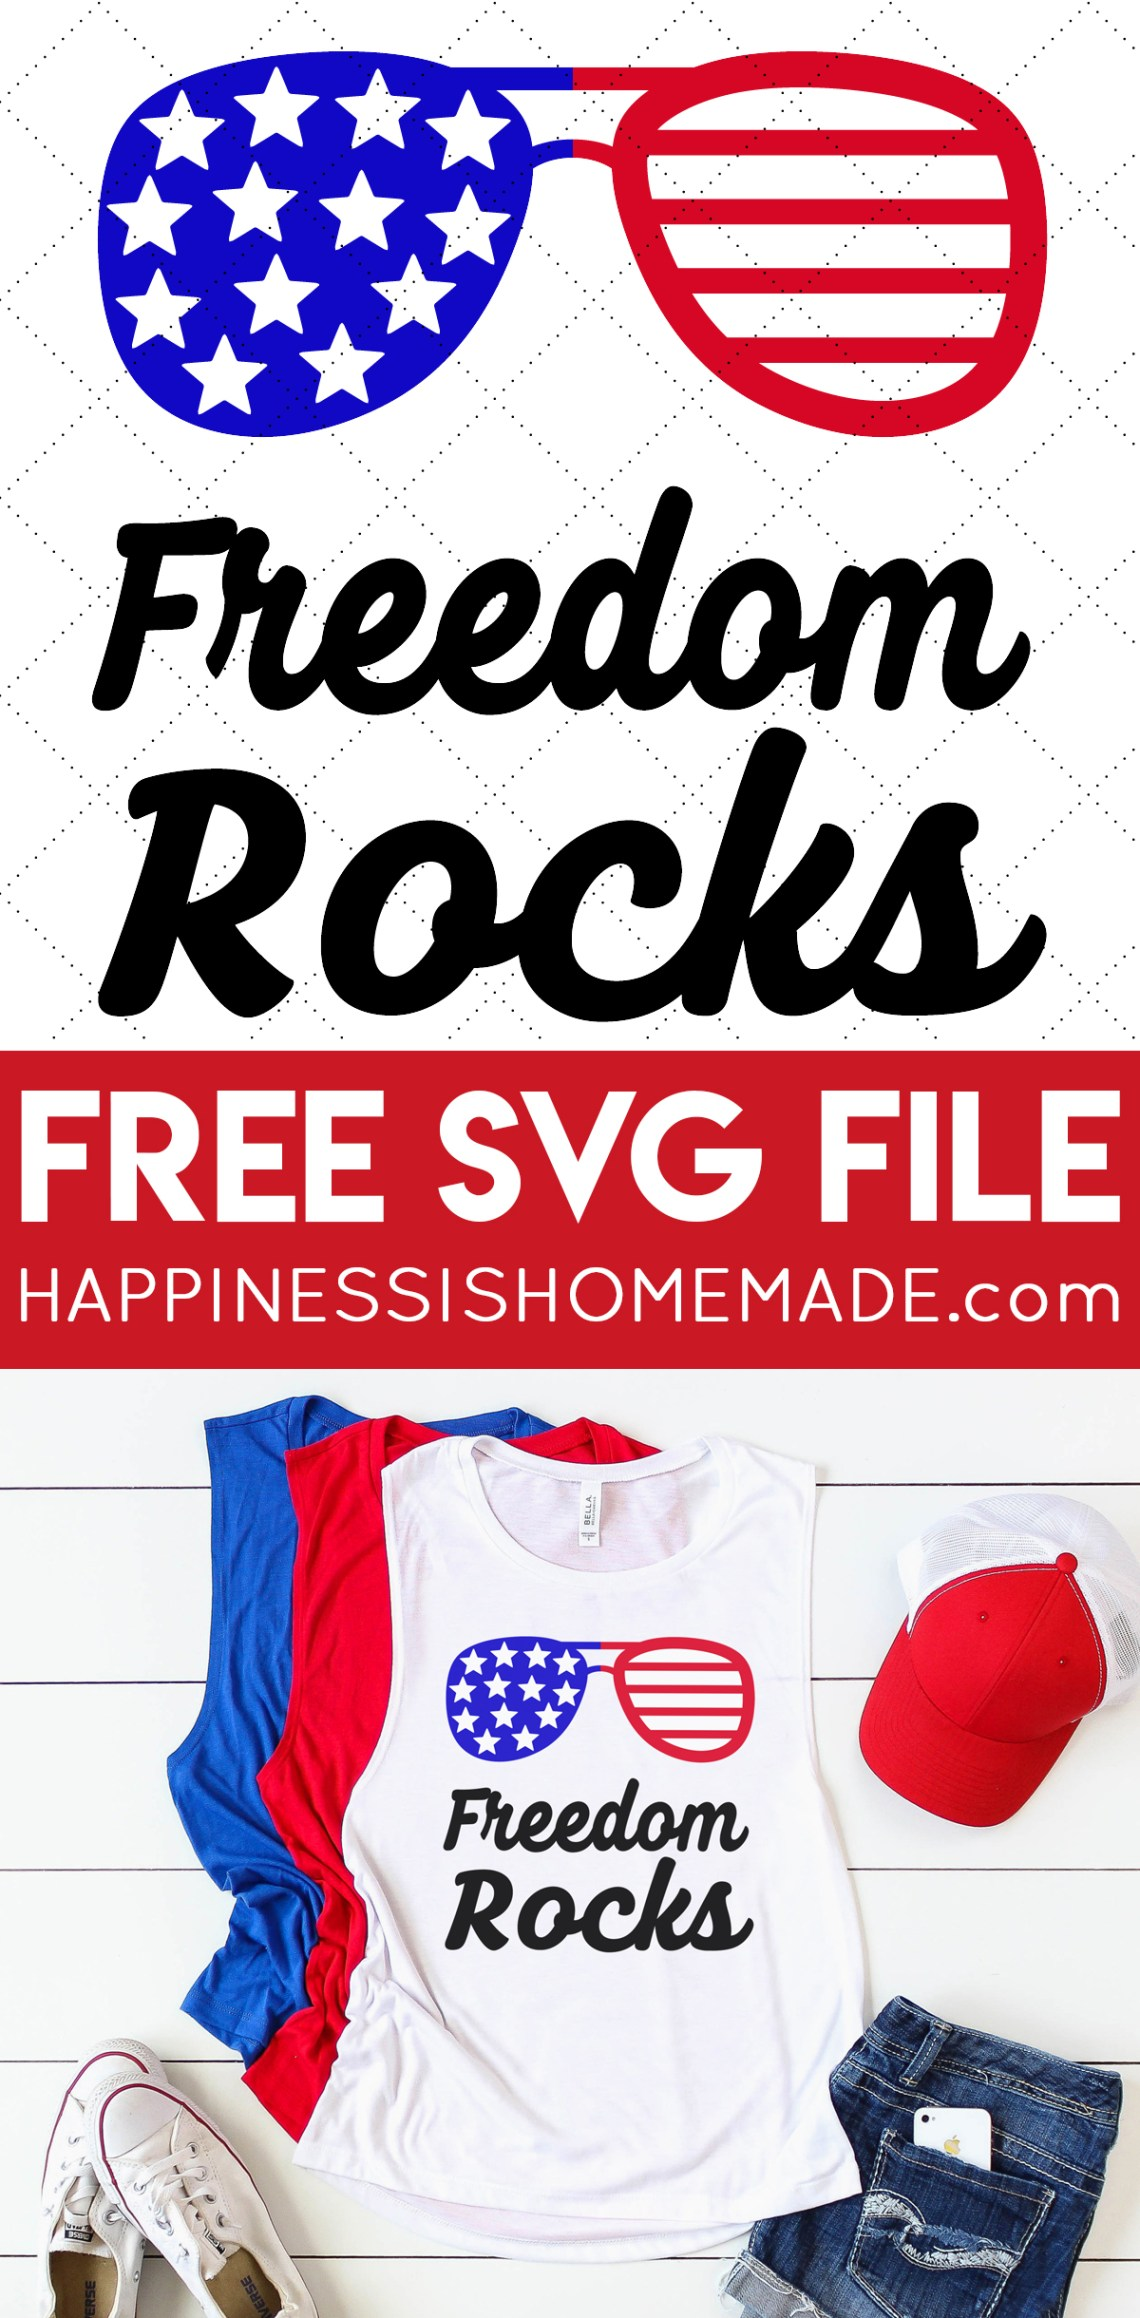 Download Free 4th of July SVG Files - Happiness is Homemade